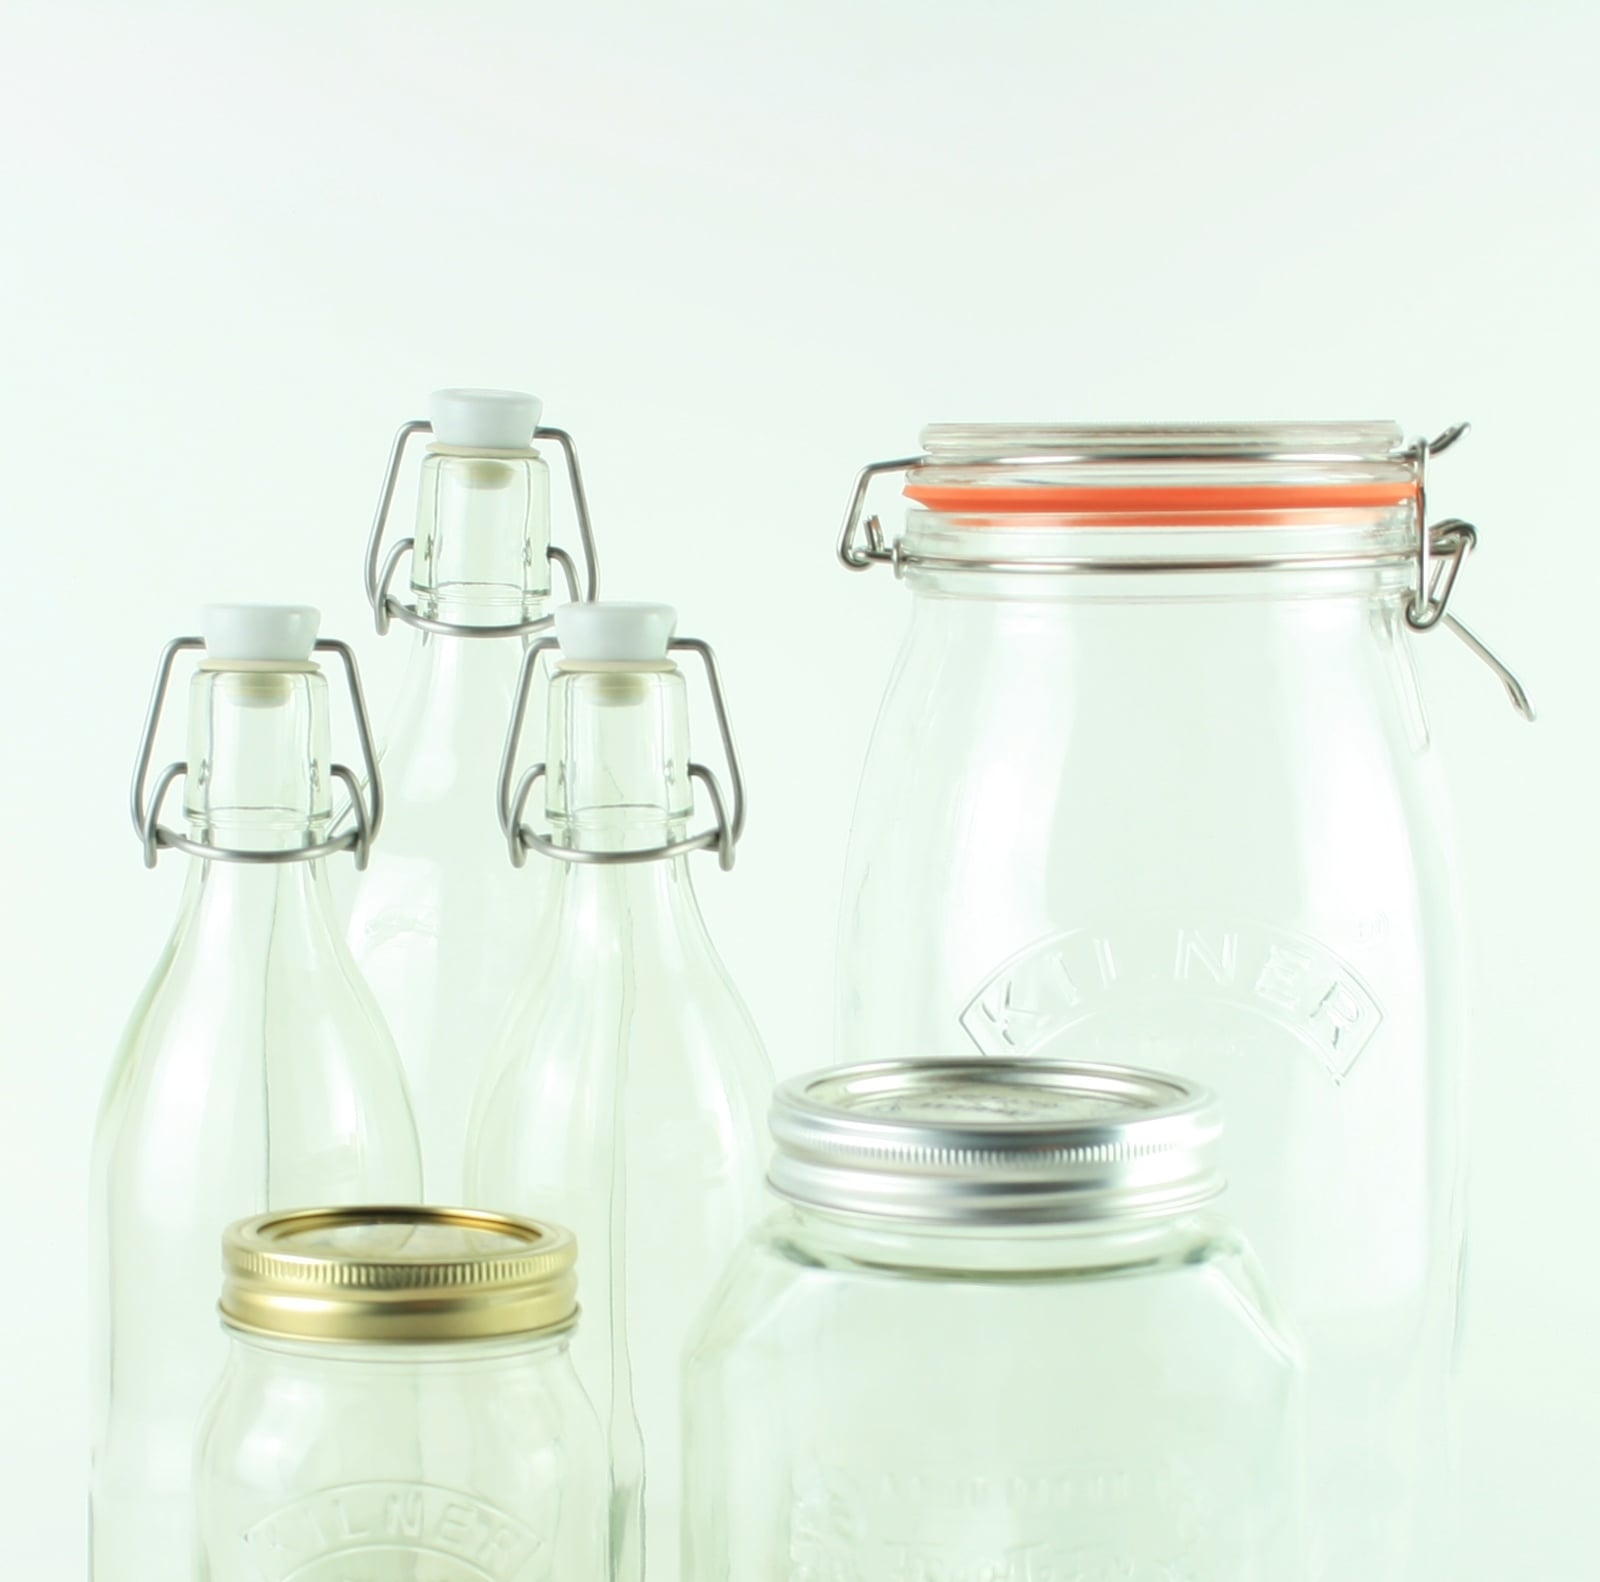 Preserve Jars, Bottles and Accessories